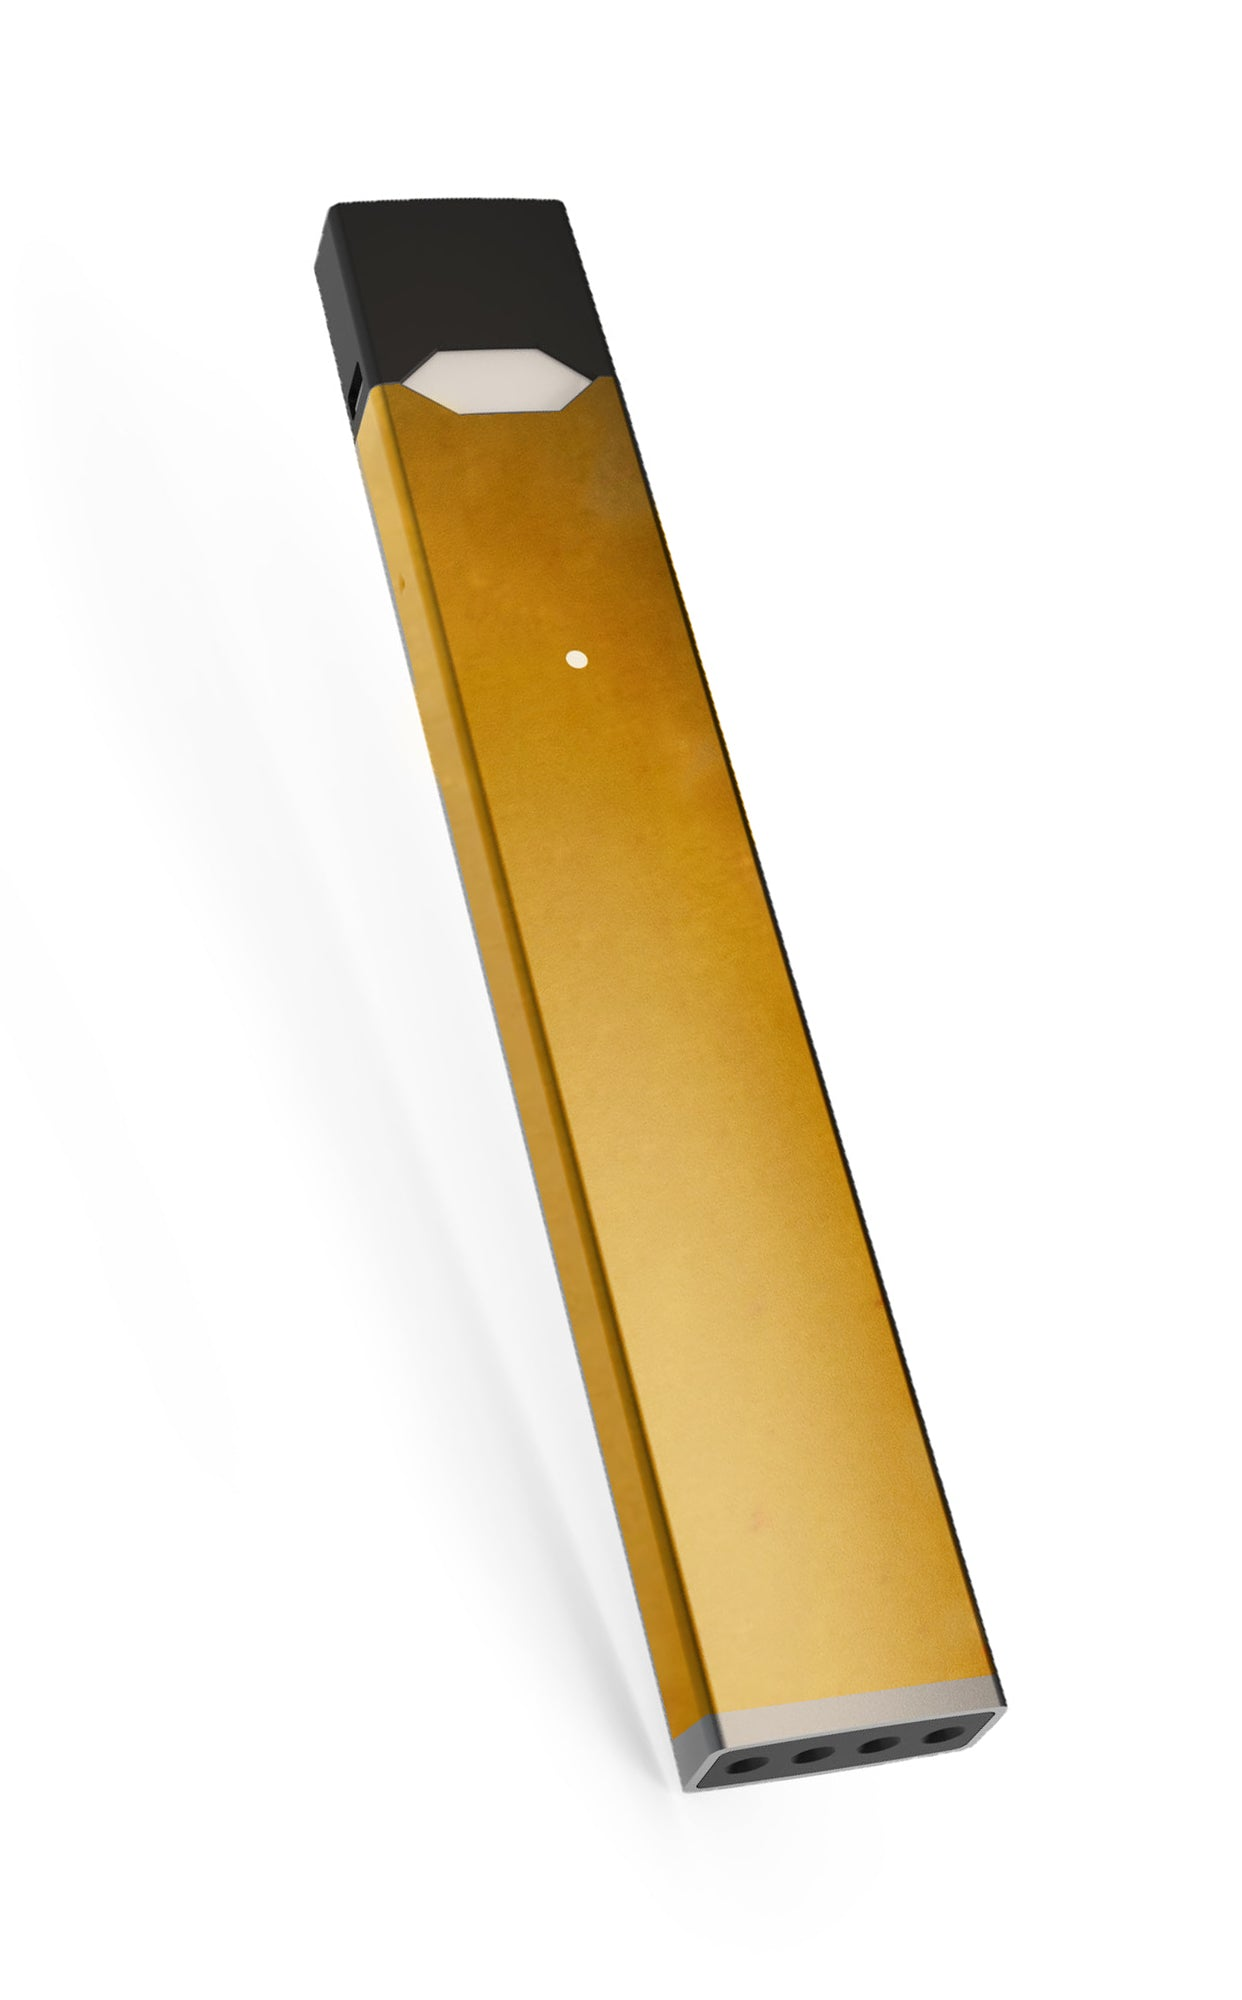 Juul Gold Images - Reverse Search